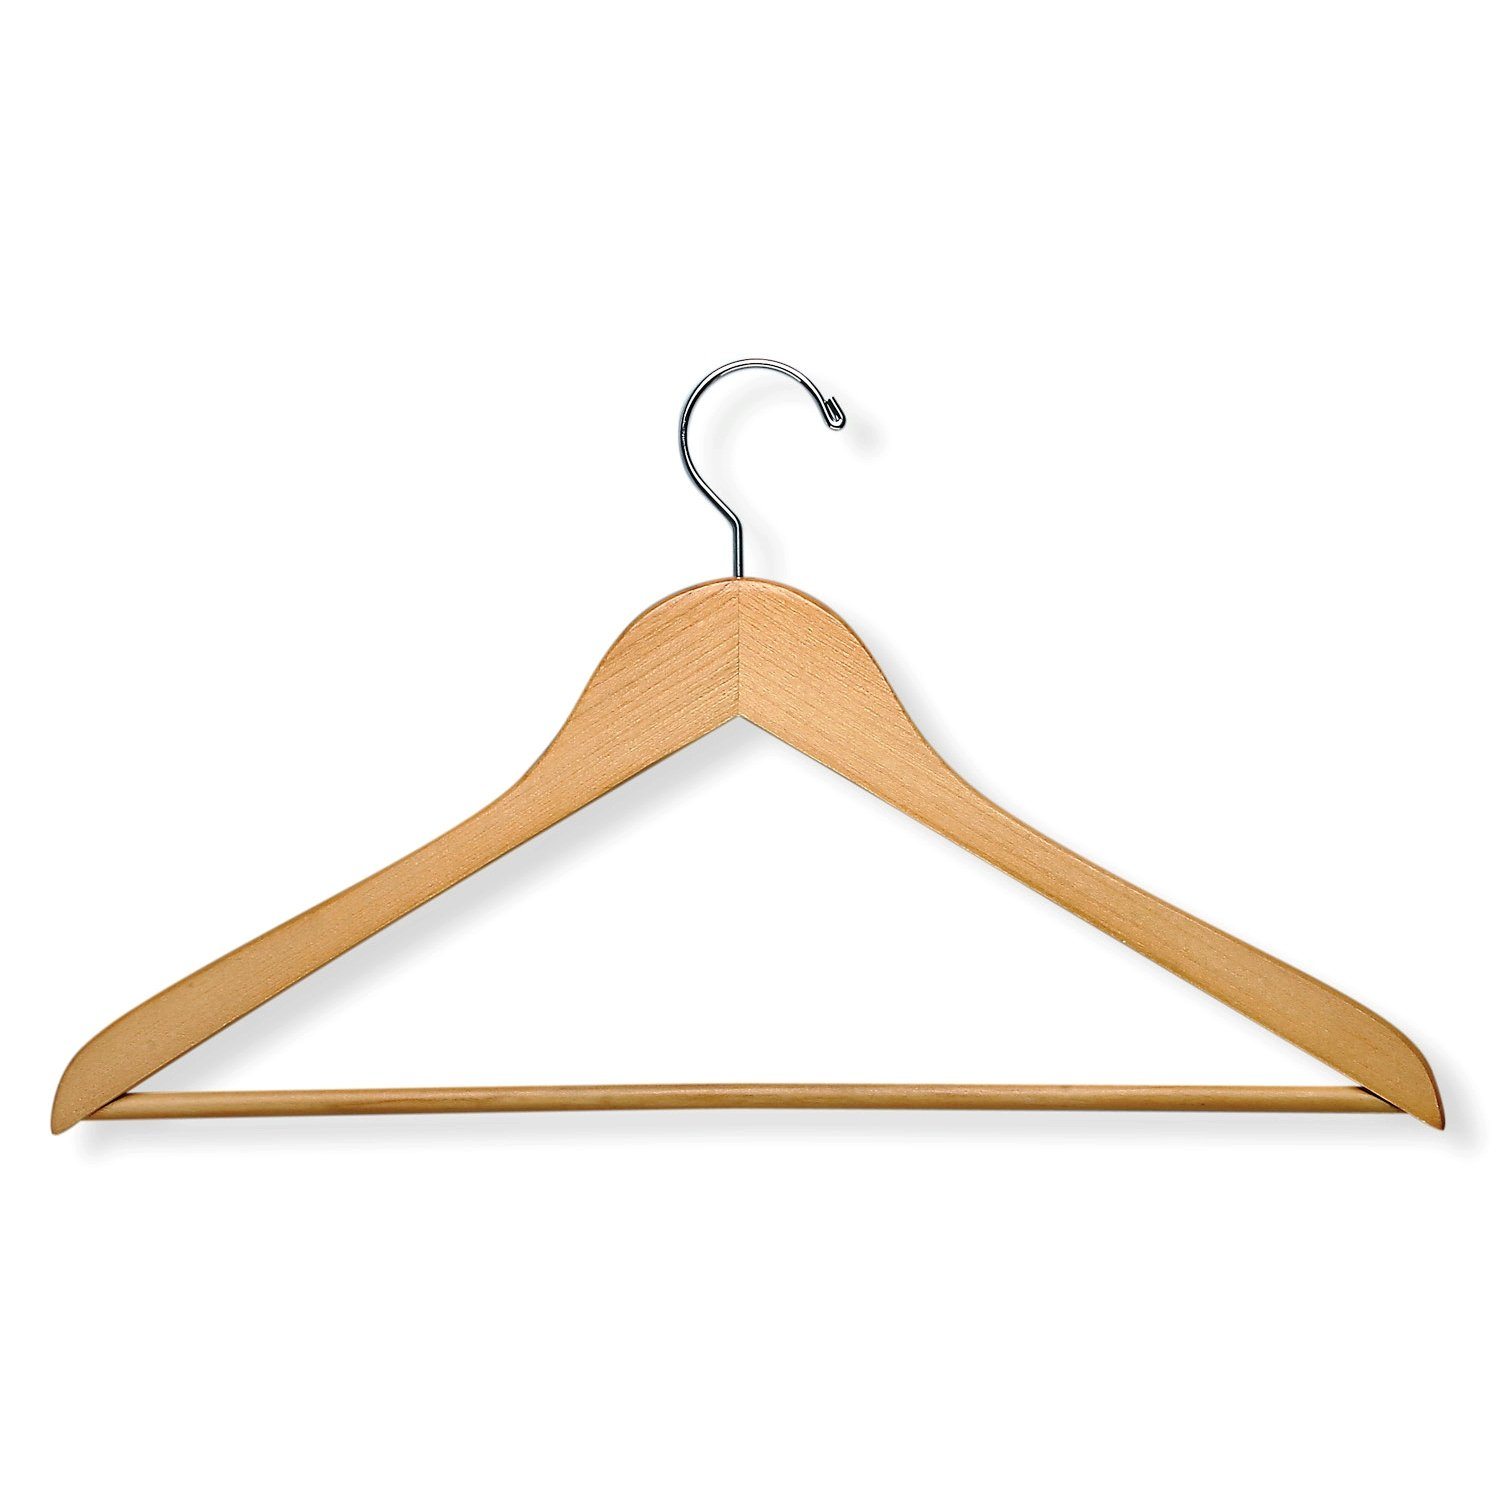 Honey-Can-Do HNGZ01206 Wood Suit Hangers with Non-Slip Bar 8-Pack Maple